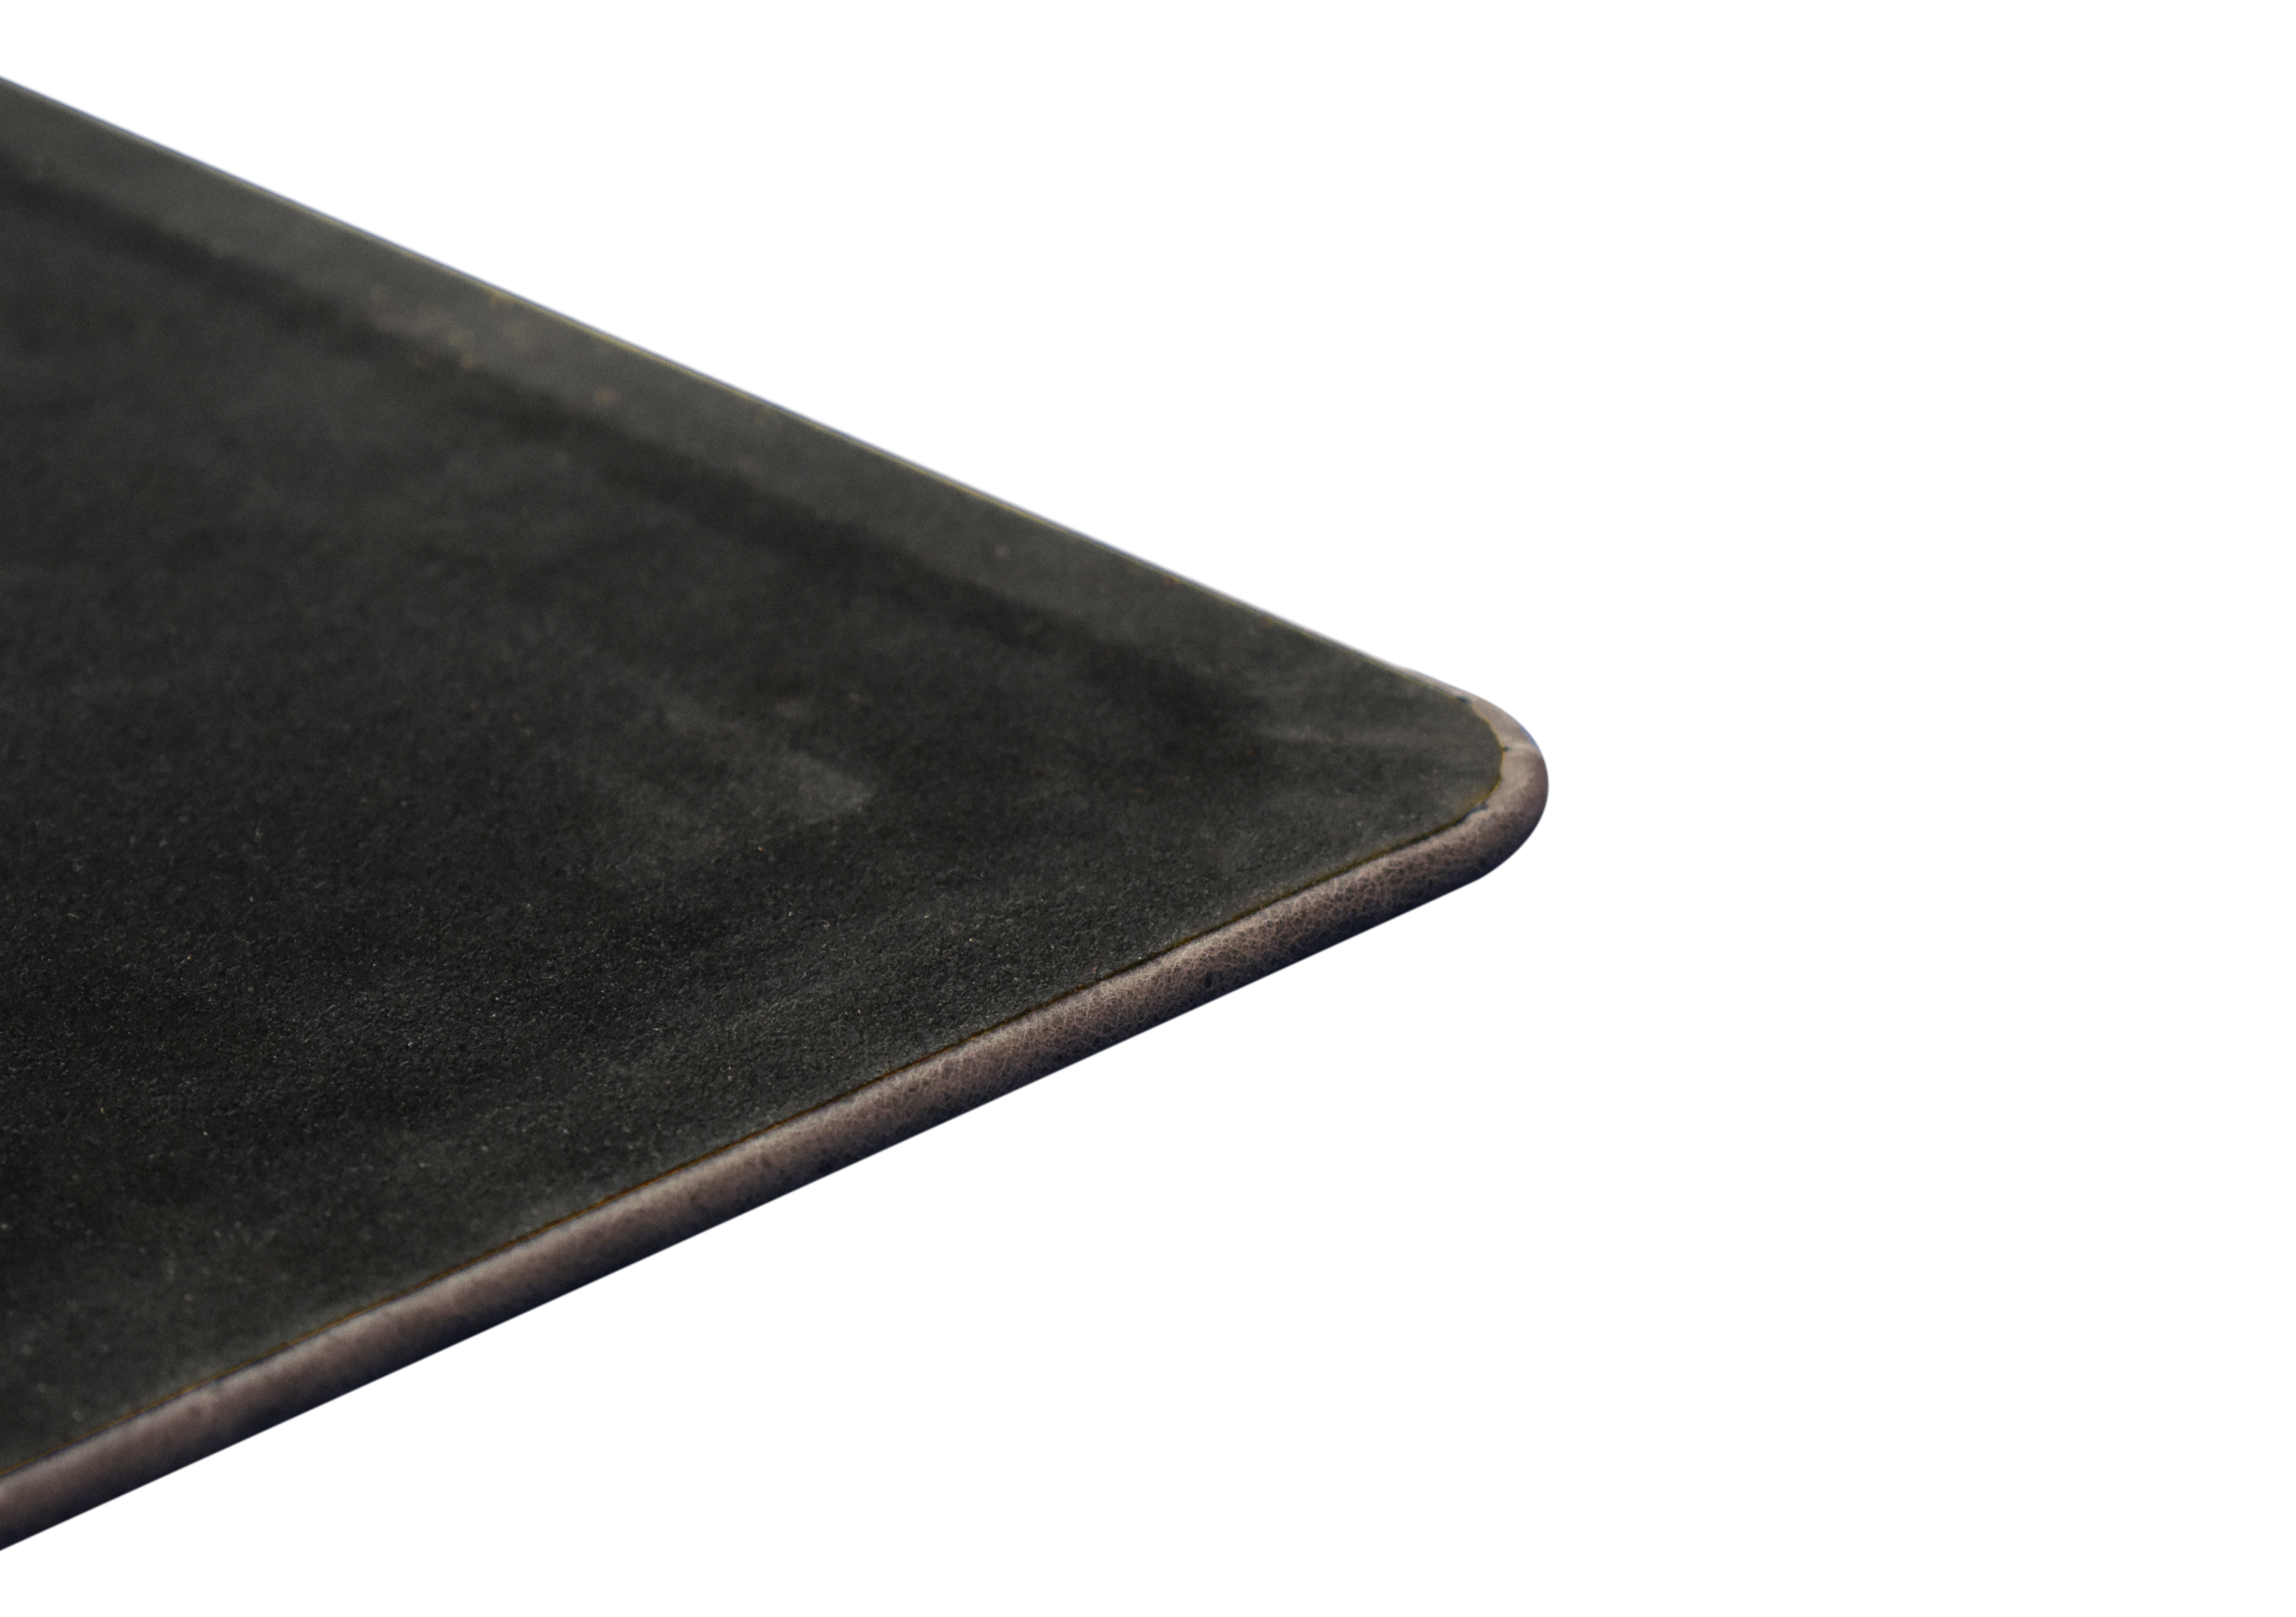 Antharcite Leather Desk Pad Distressed Genuine Leather